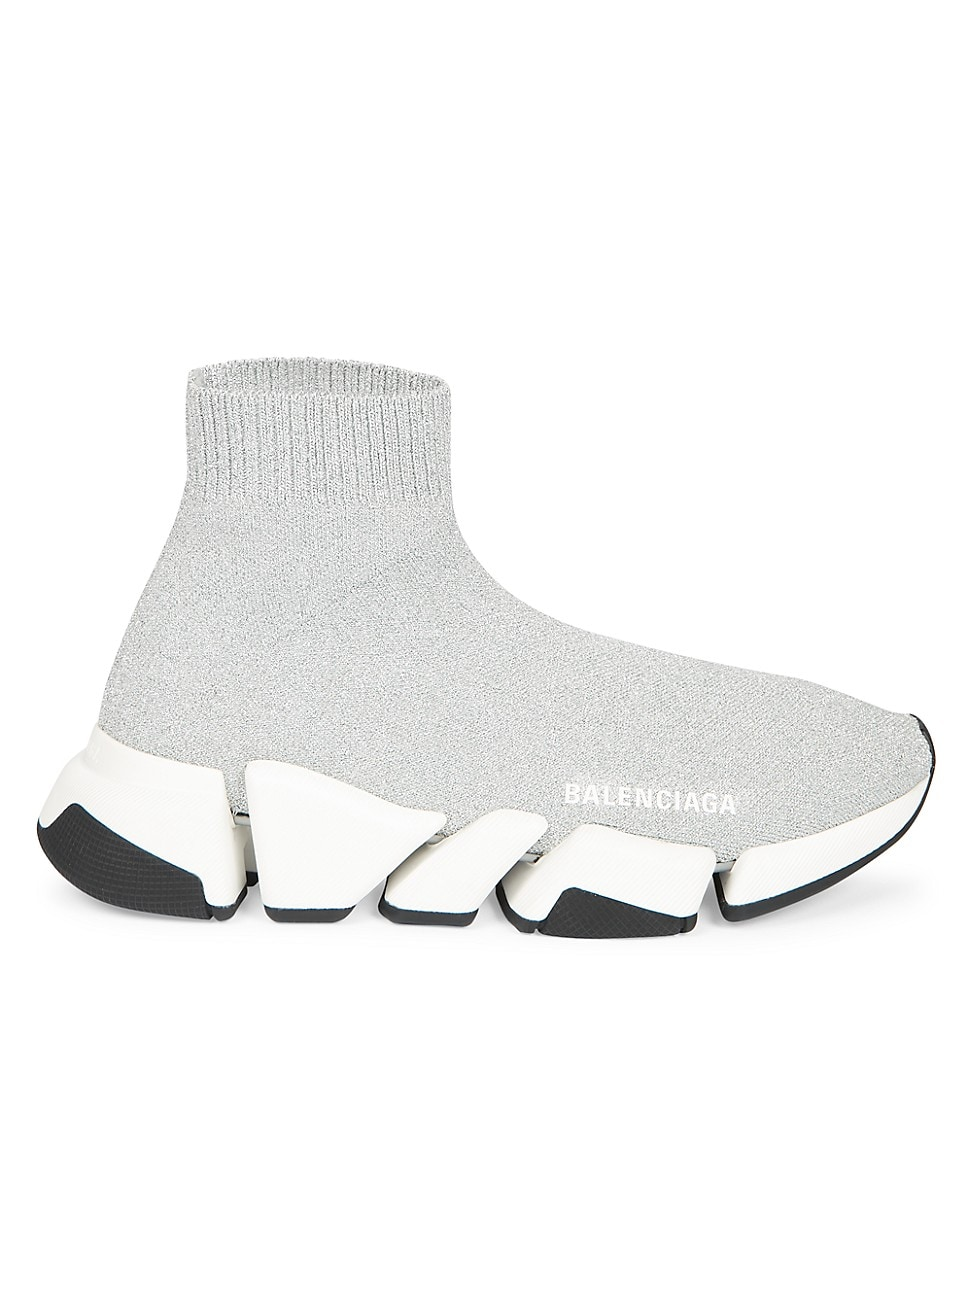 Balenciaga WOMEN'S SPEED 2.0 SOCK SNEAKERS